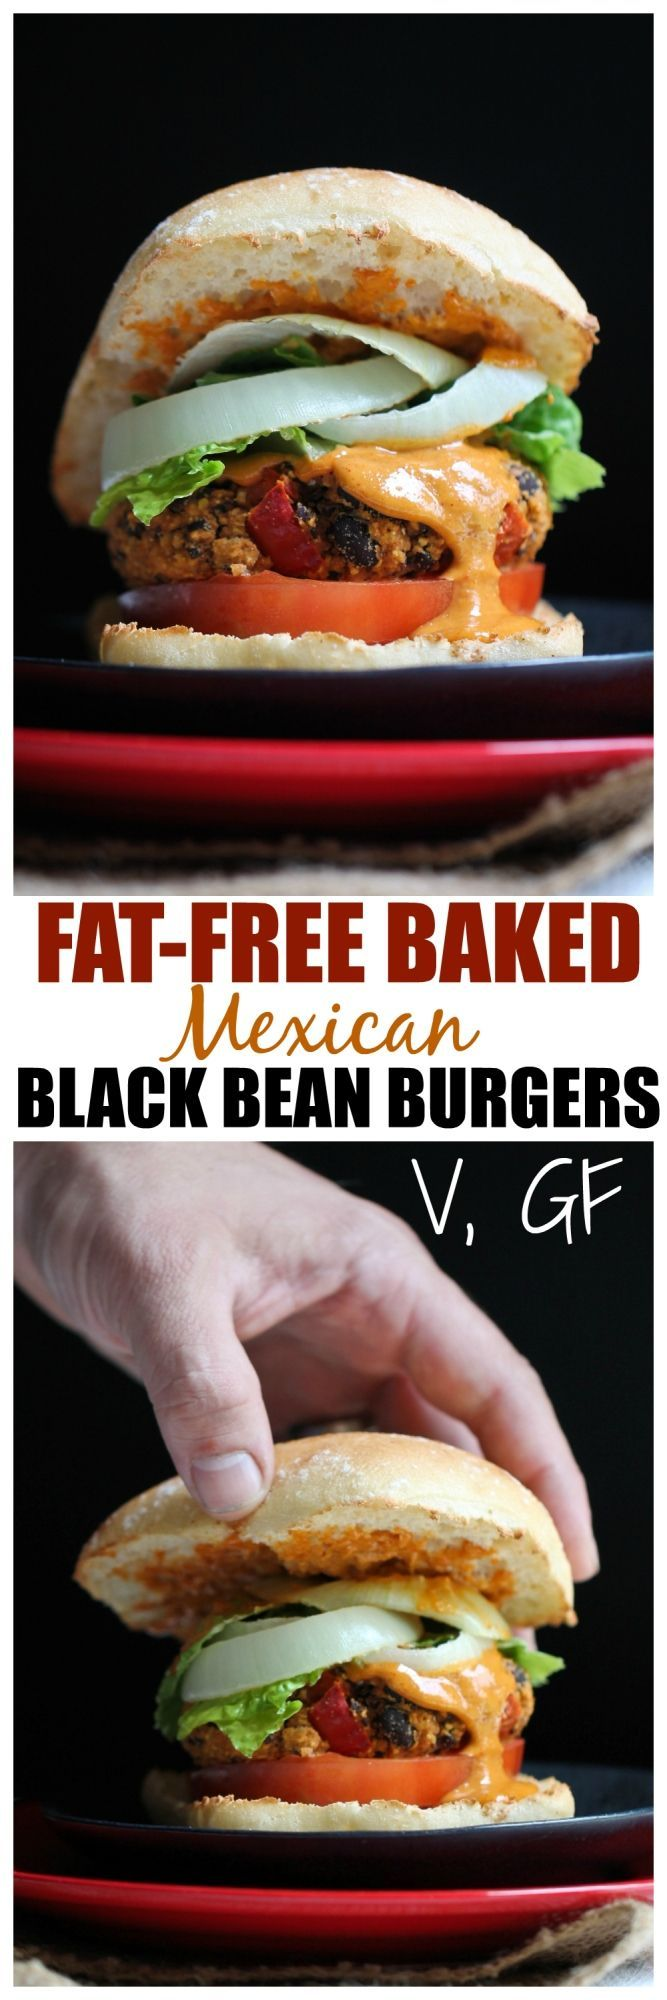 Baked Mexican Black Bean Burgers Finallllyyyy a black bean burger that doesn't fall apart, has a nice chew to it and doesn't all squish out from the inside when you take a bite! Do you all know what I'm talking about?? I can't sta...Finallllyyyy a black bean burger that doesn't fall apart, has a nice chew to it and doesn't all squish out from the inside when yo...